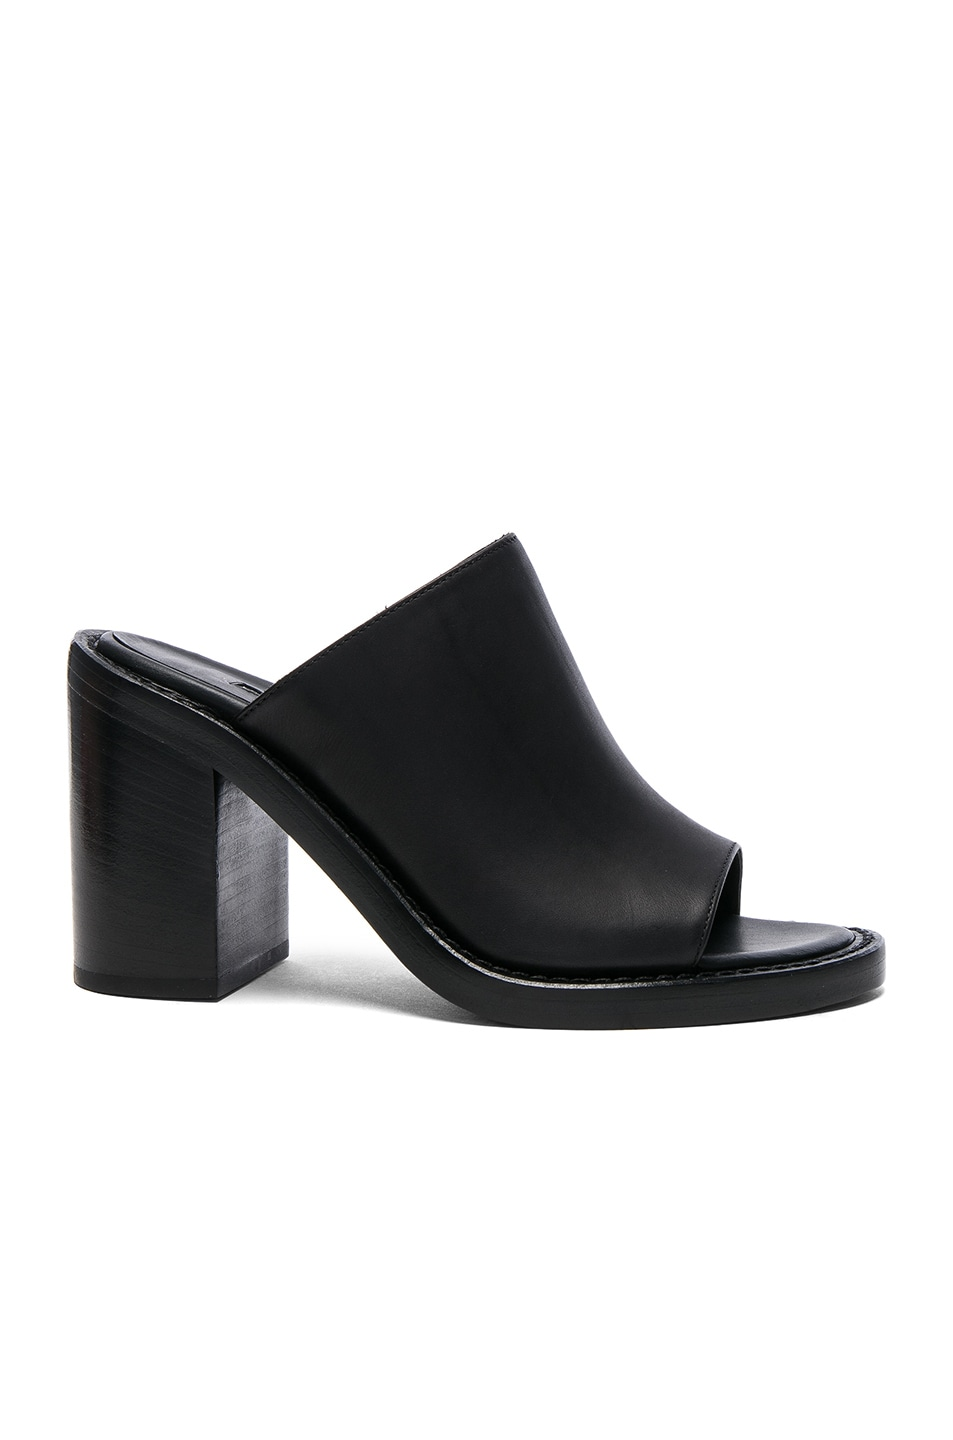 Image 1 of Ann Demeulemeester Leather Mules in Black